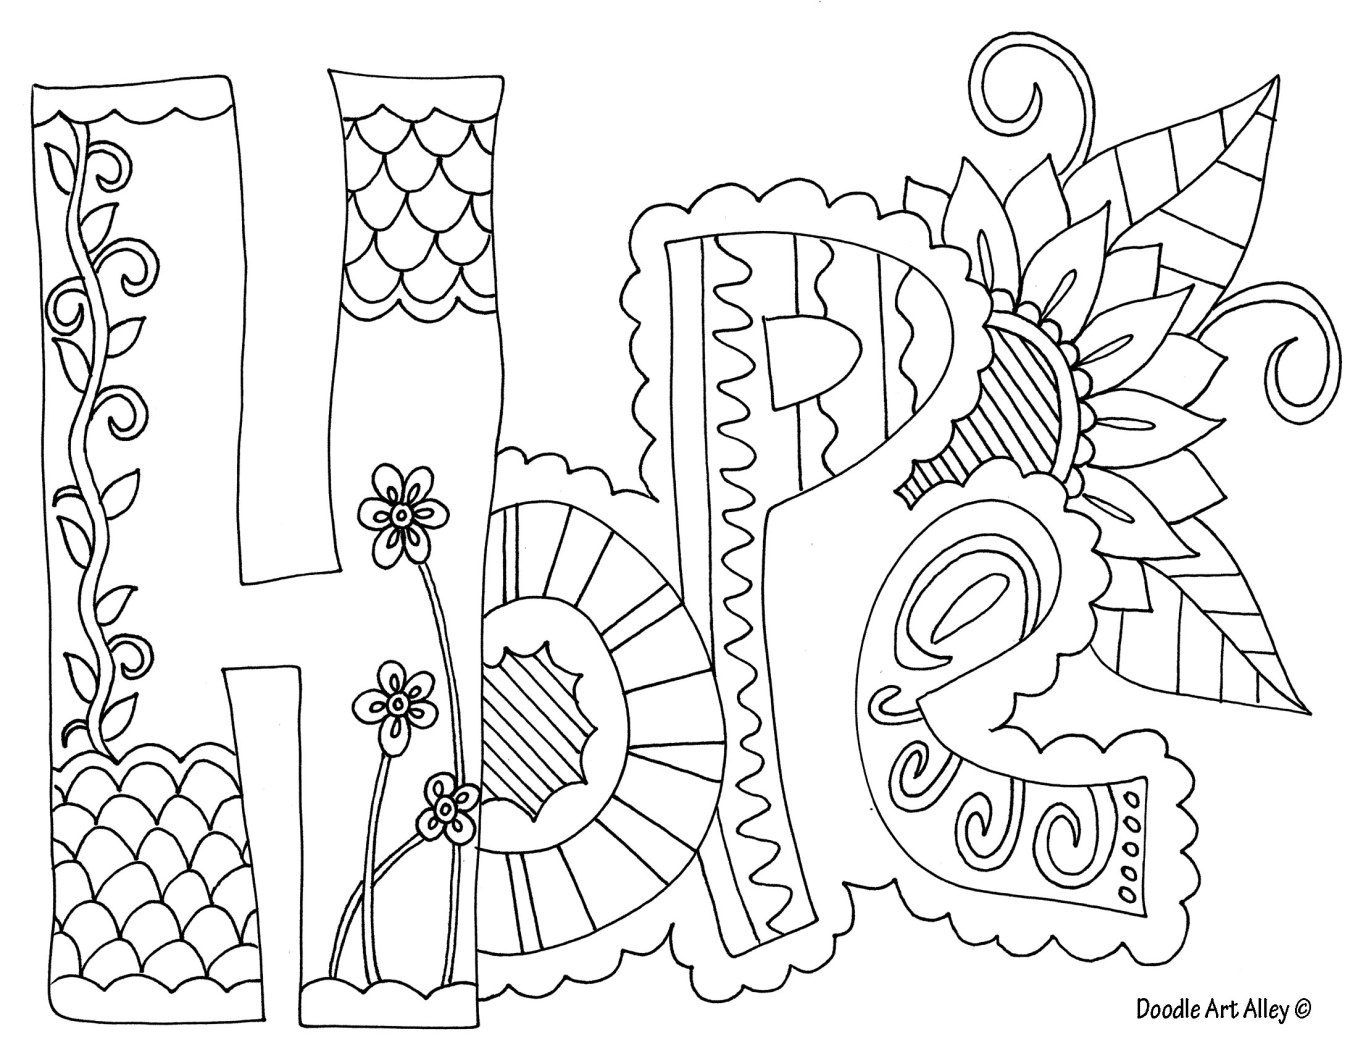 Hope coloring page to encourage discussion in a creative